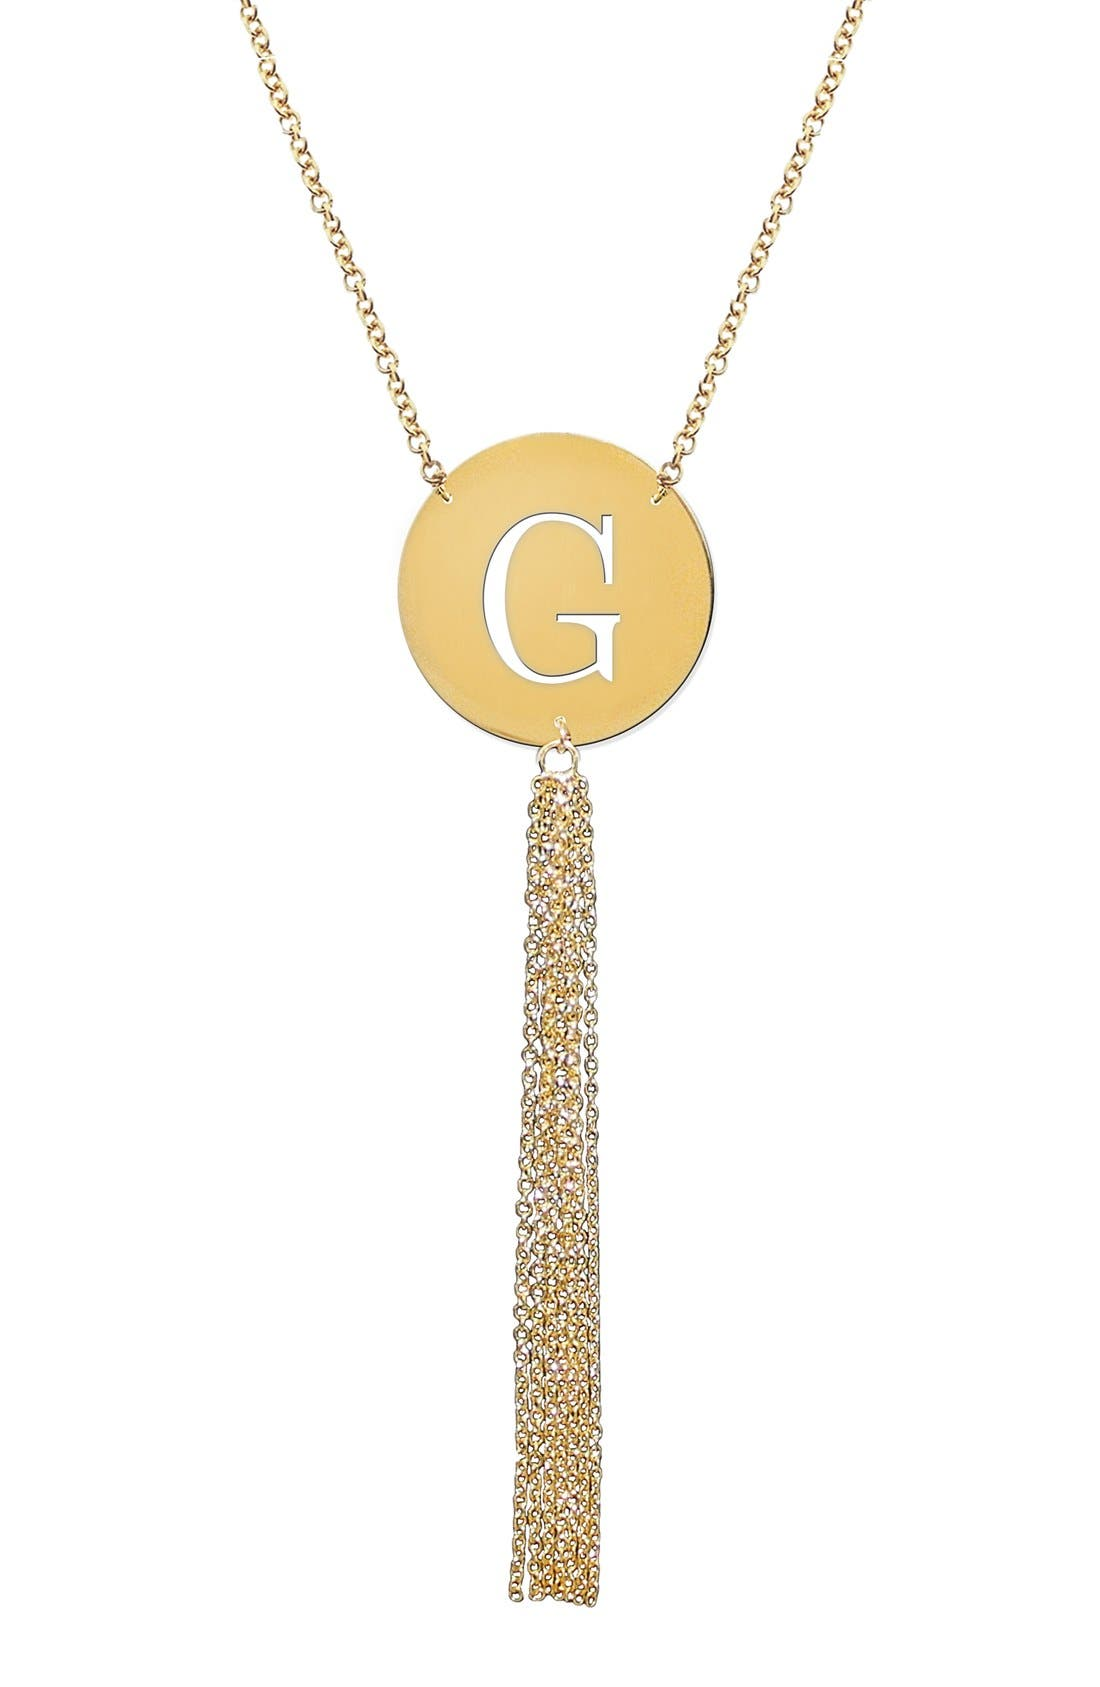 Main Image - Jane Basch Designs Initial Tassel Pendant Necklace